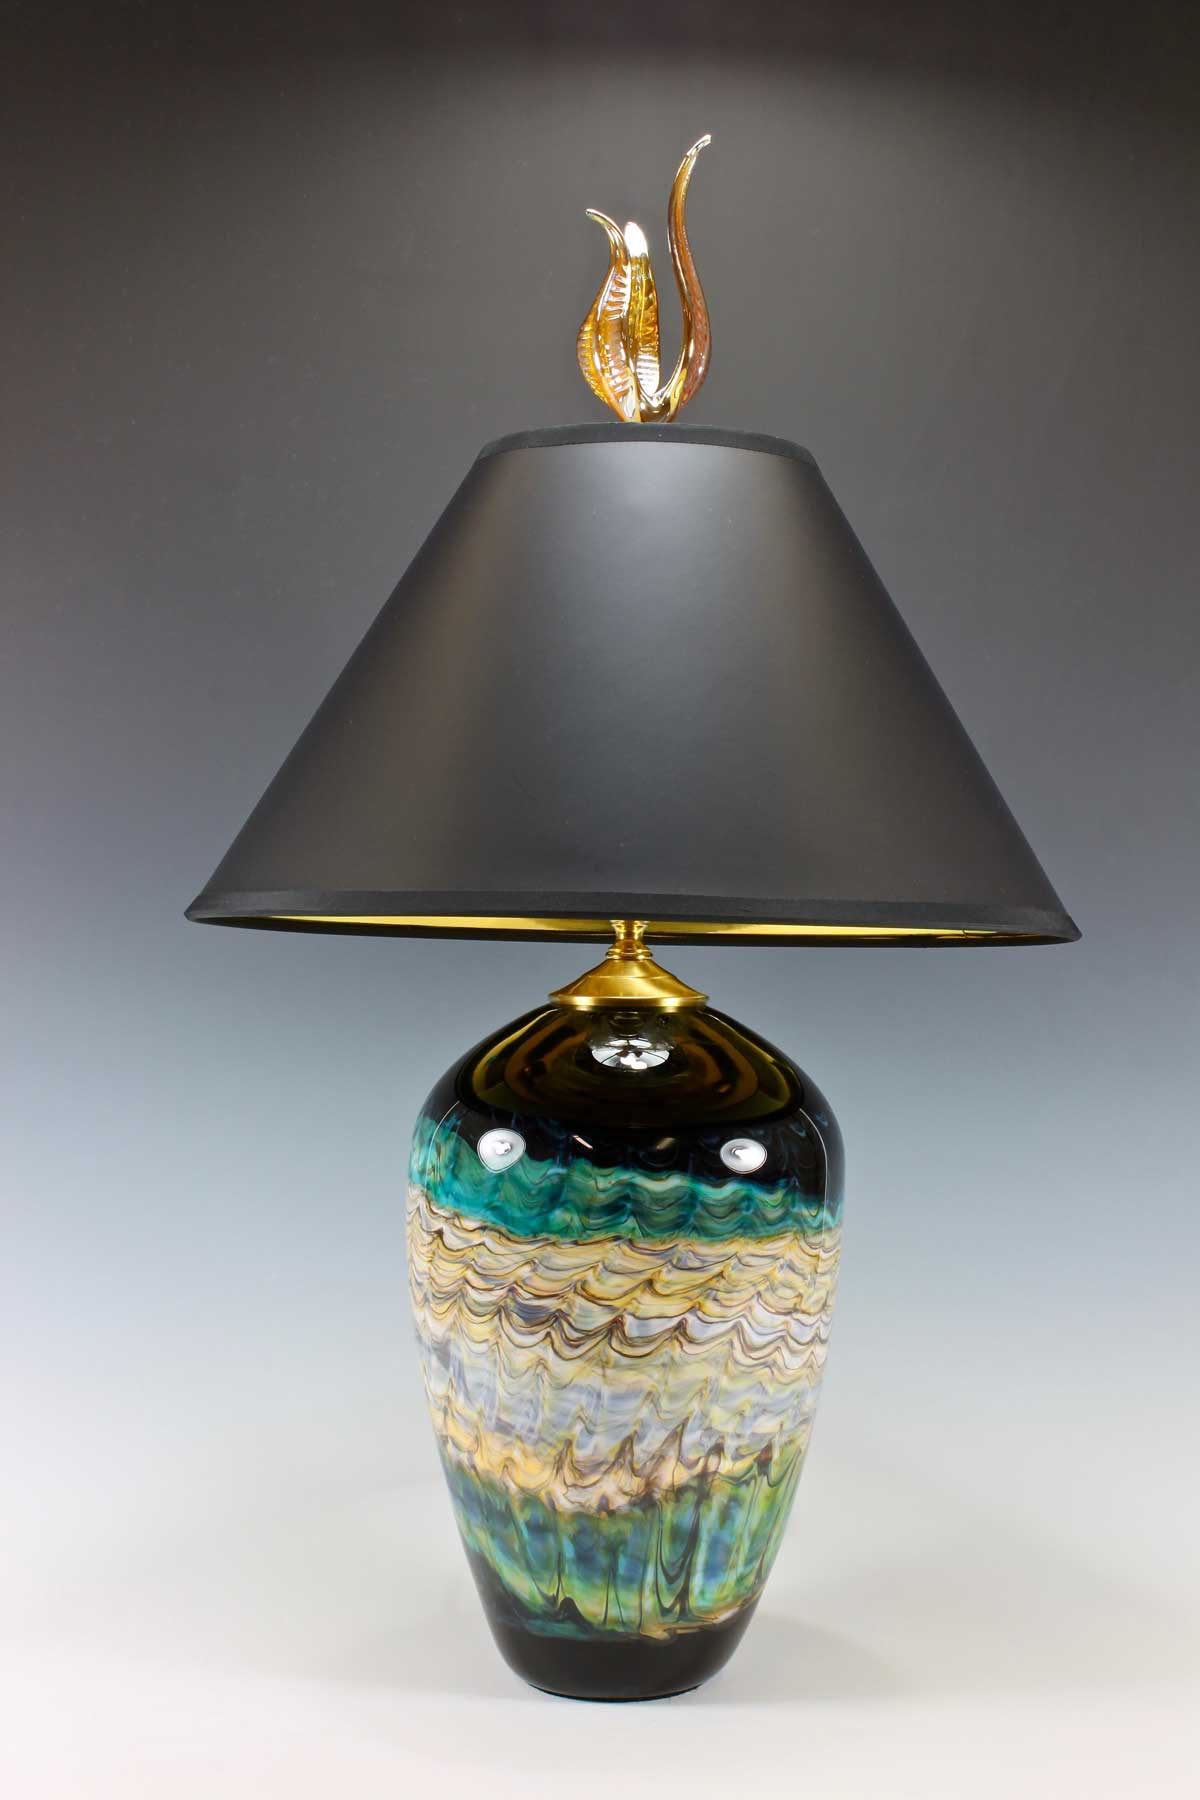 Black-Opal-Turquoise-Table-Lamp-with-Tulip-Finial-Danielle-Blade-and-Stephen-Gartner-Eclipse-Gallery